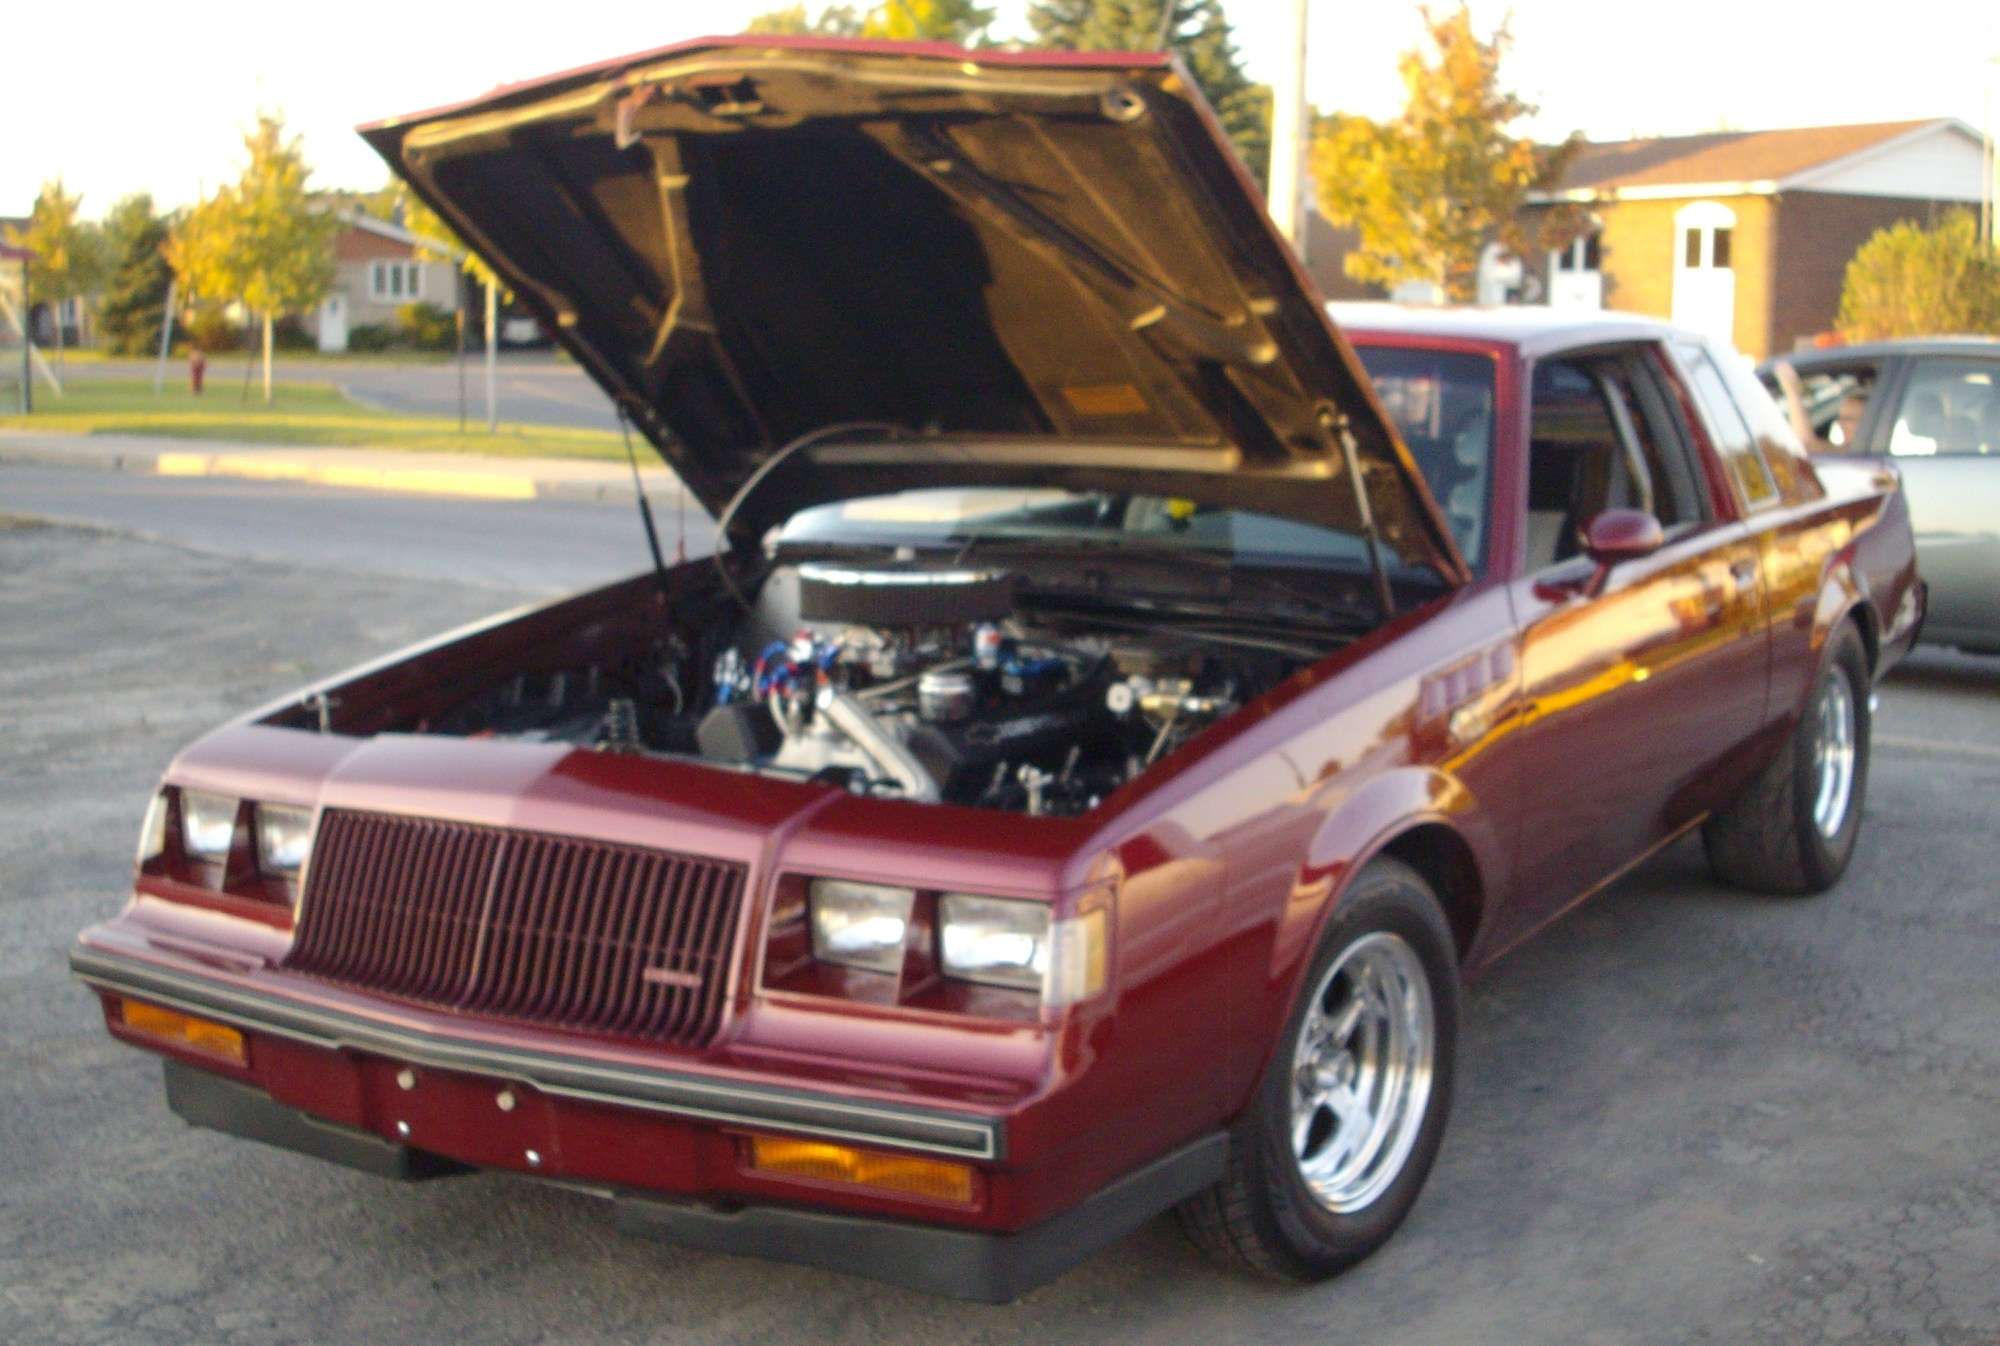 hight resolution of file 87 buick regal auto classique combos express